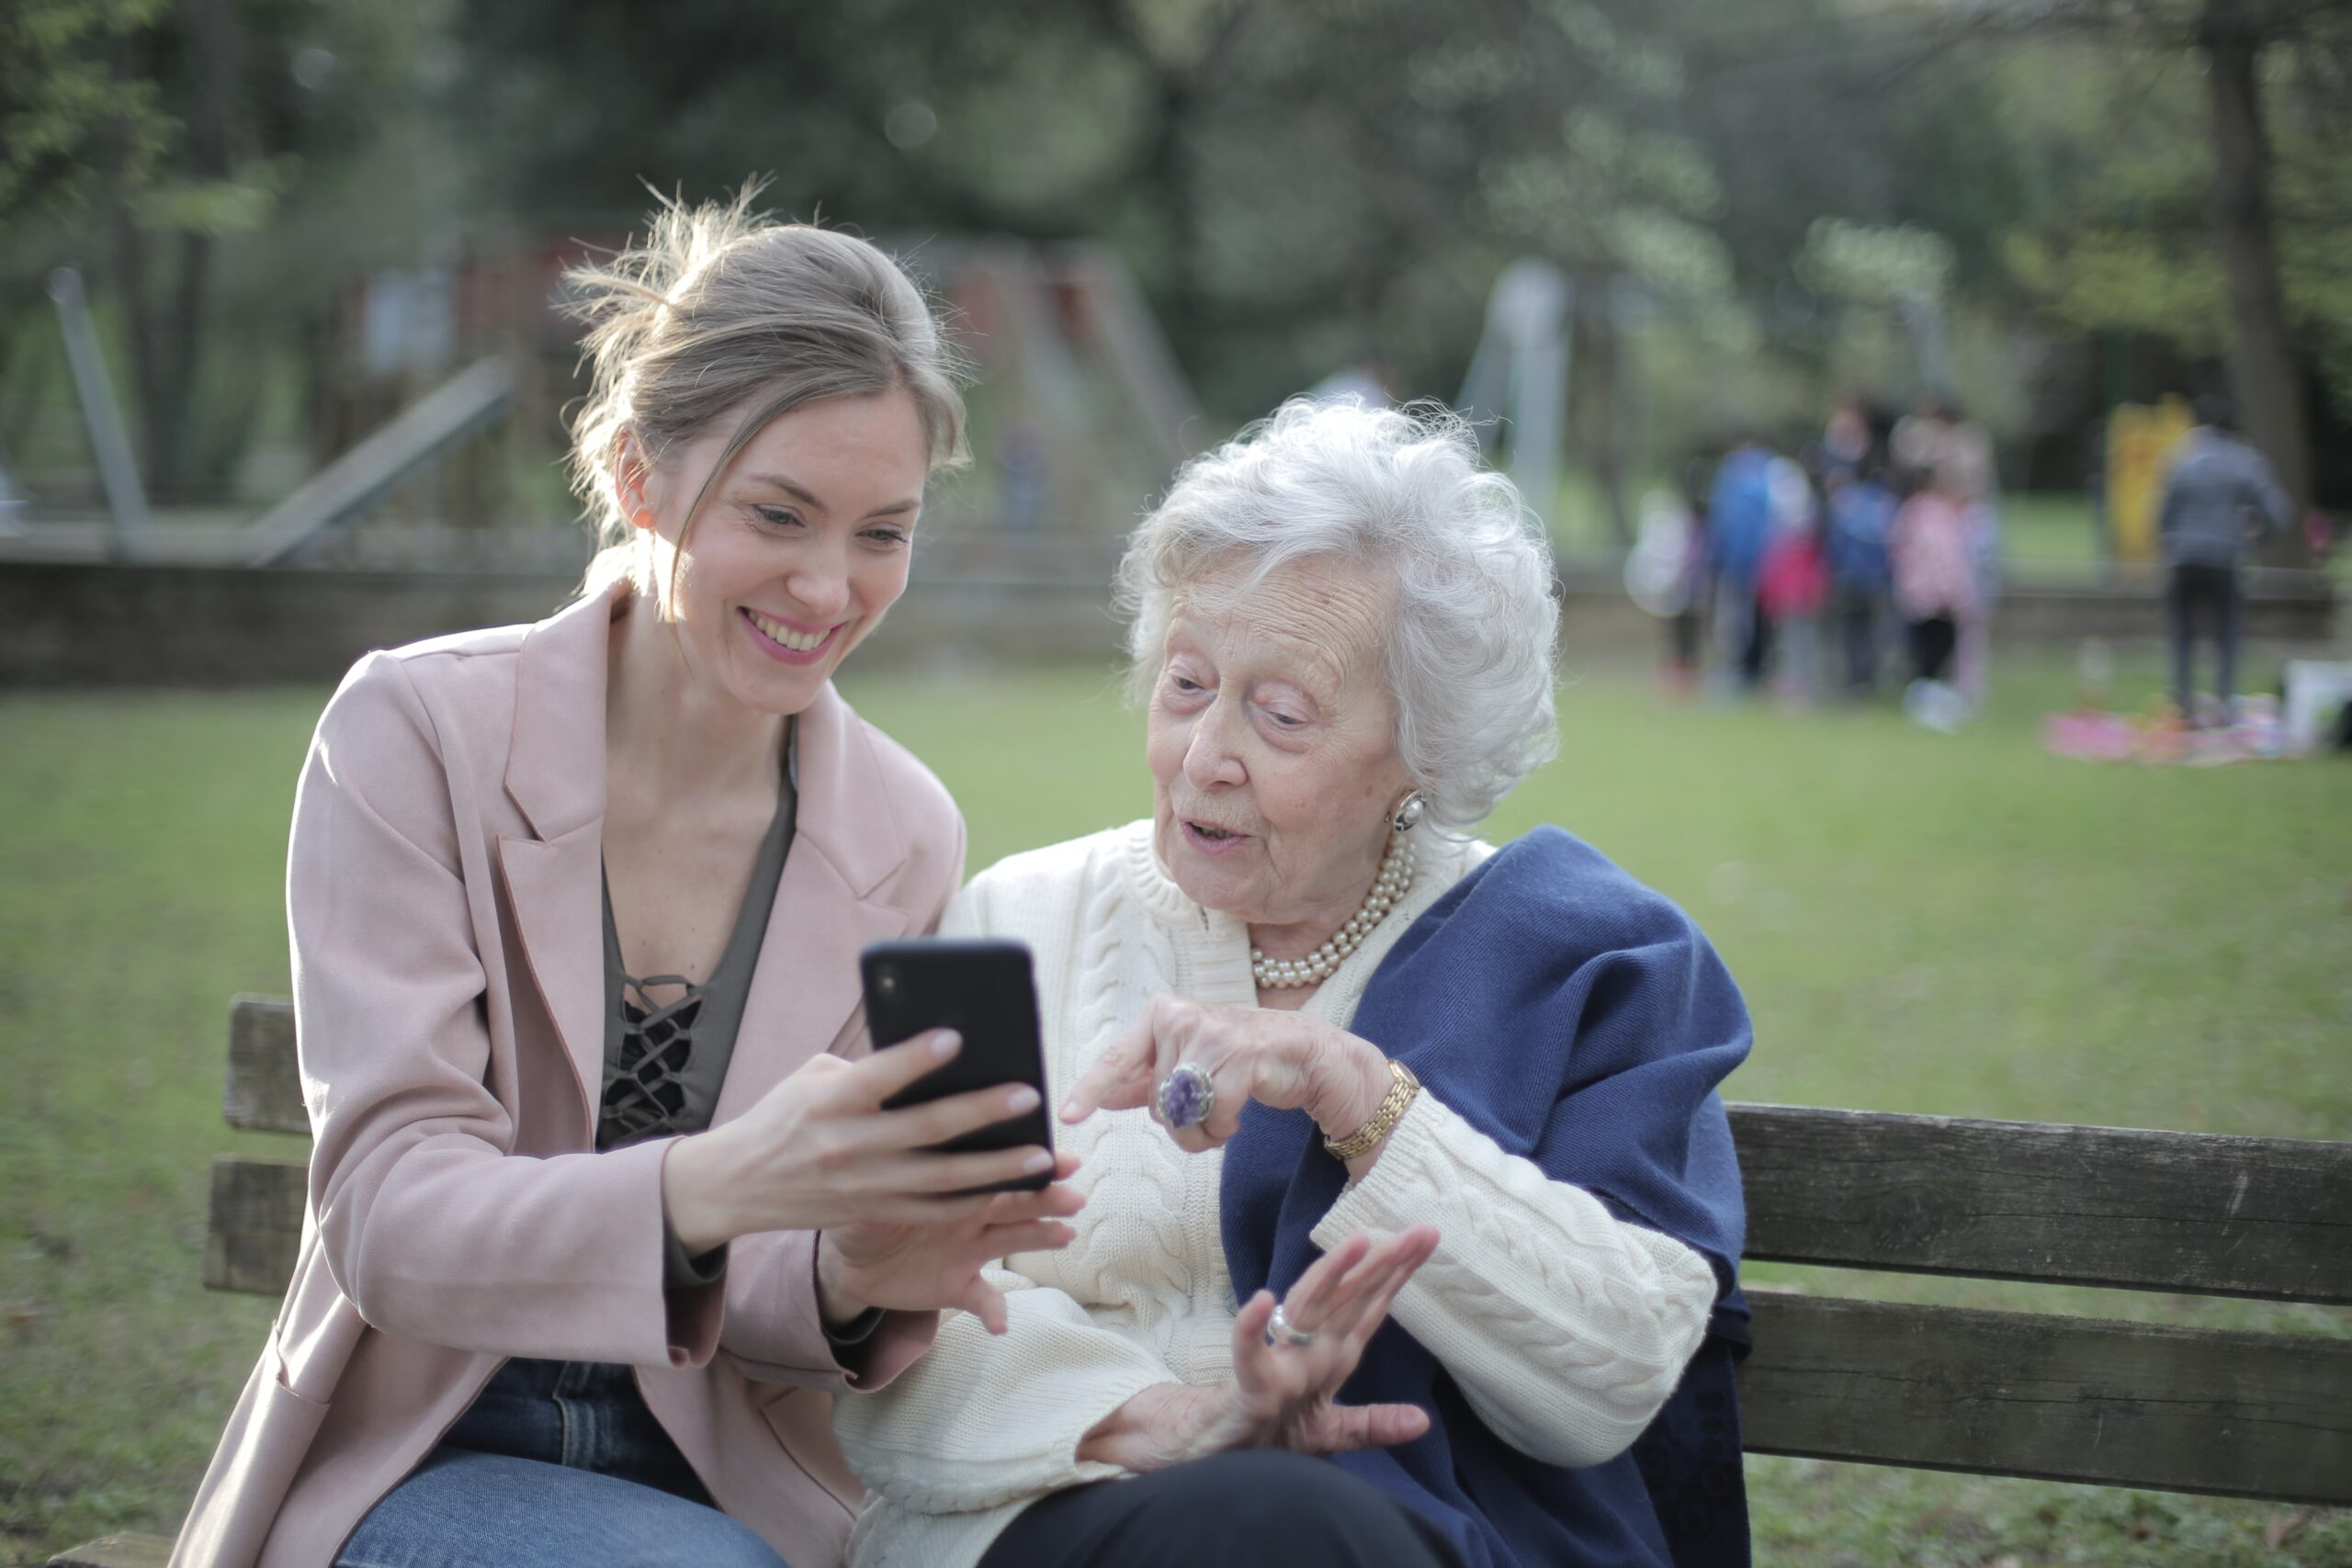 Adult daughter sitting on a park bench with her senior mother showing images on a smartphone